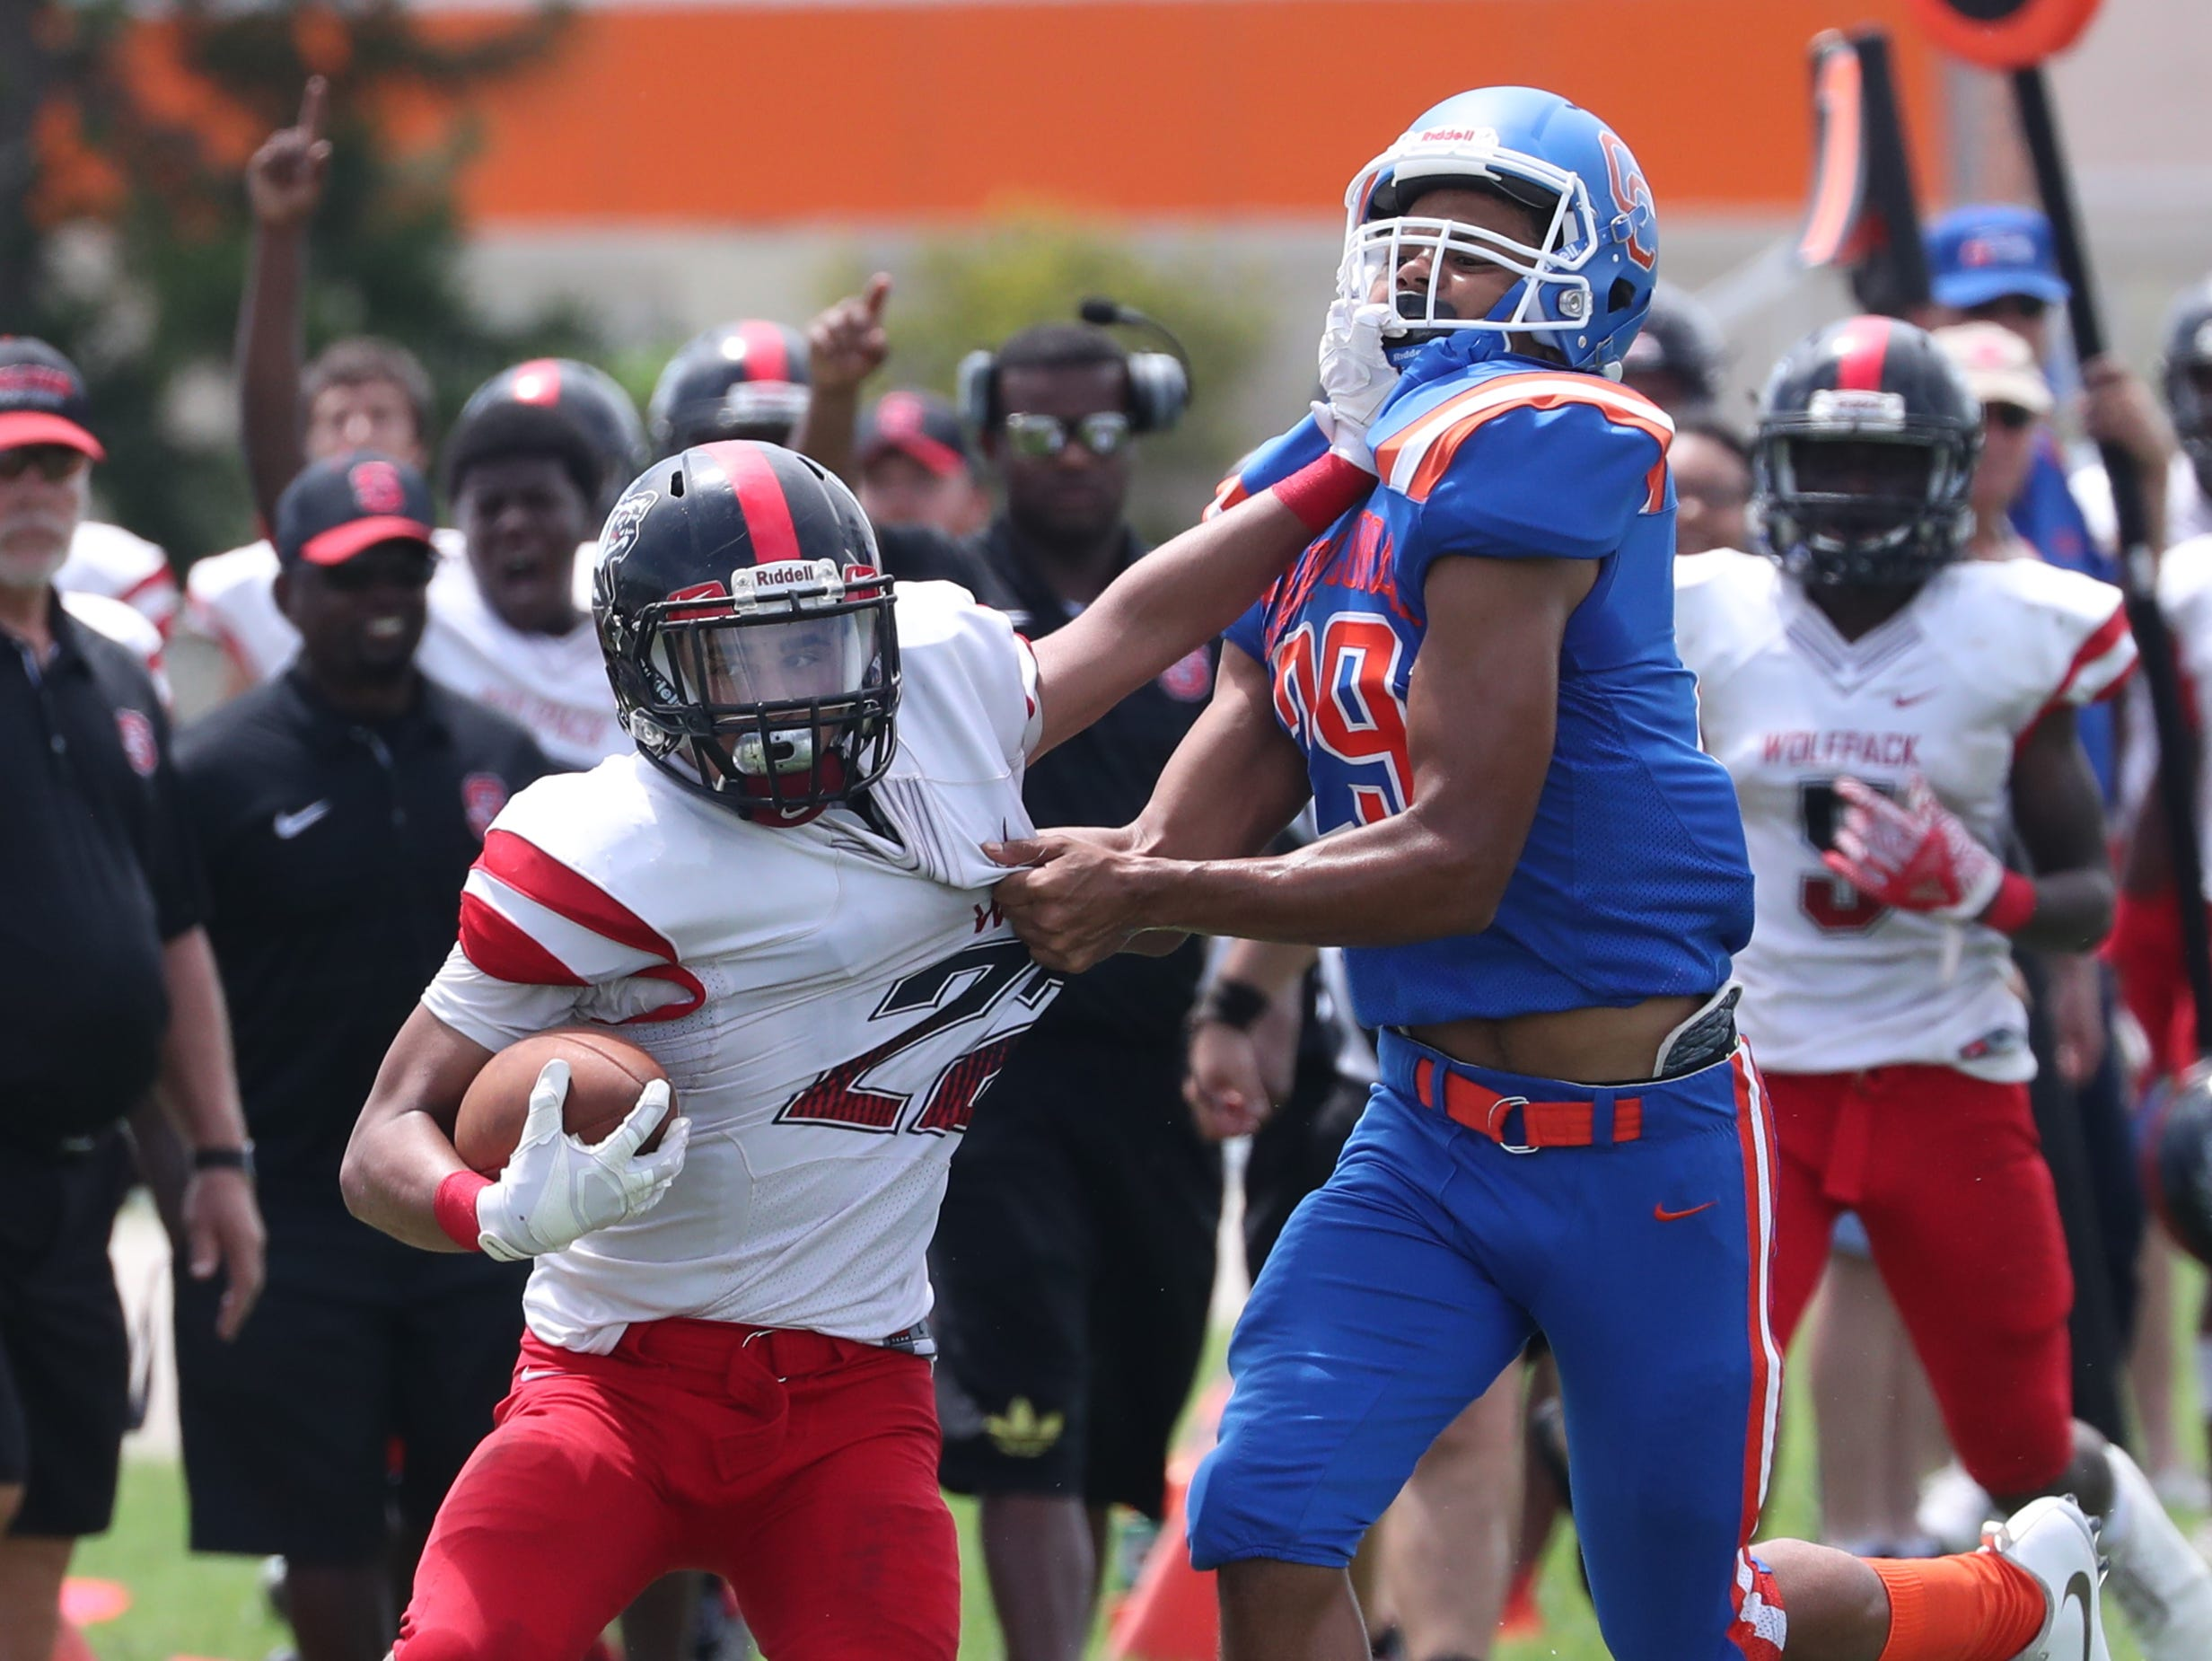 Brodrick Hamilton Cape Coral High School tries to stop Marco Cardona, South Fort Myers, from gaining ground. Cape beat South Fort Myers in their Saturday morning game.